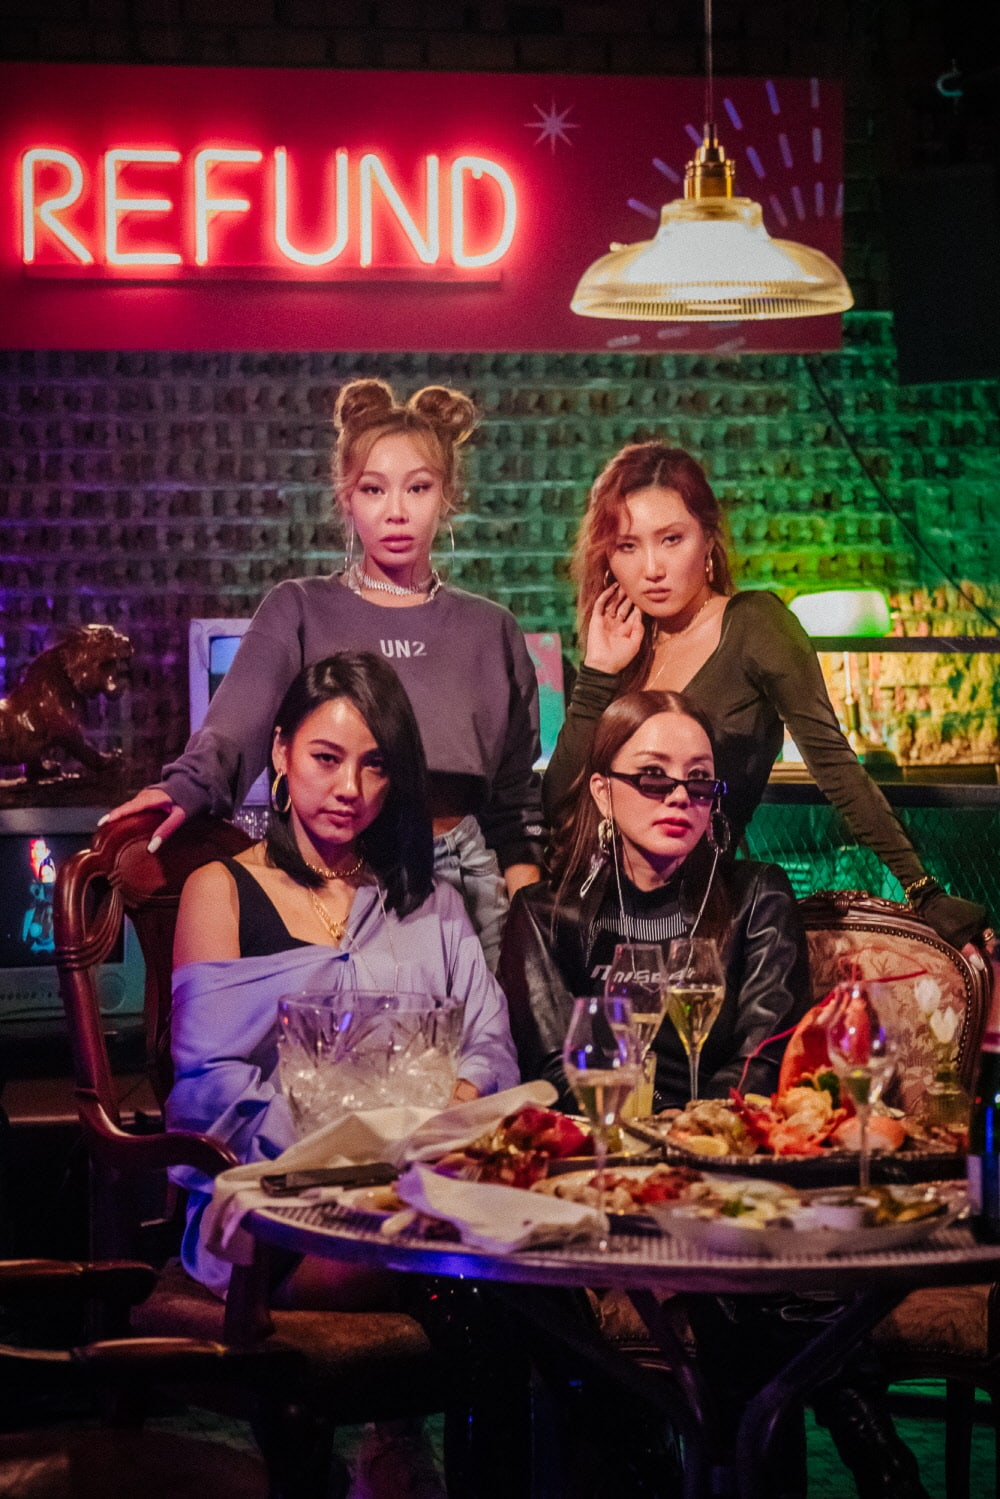 Lee Hyori, Uhm Jung Hwa, Jessi and Hwasa Full of Charisma in Refund Expedition Debut Teaser